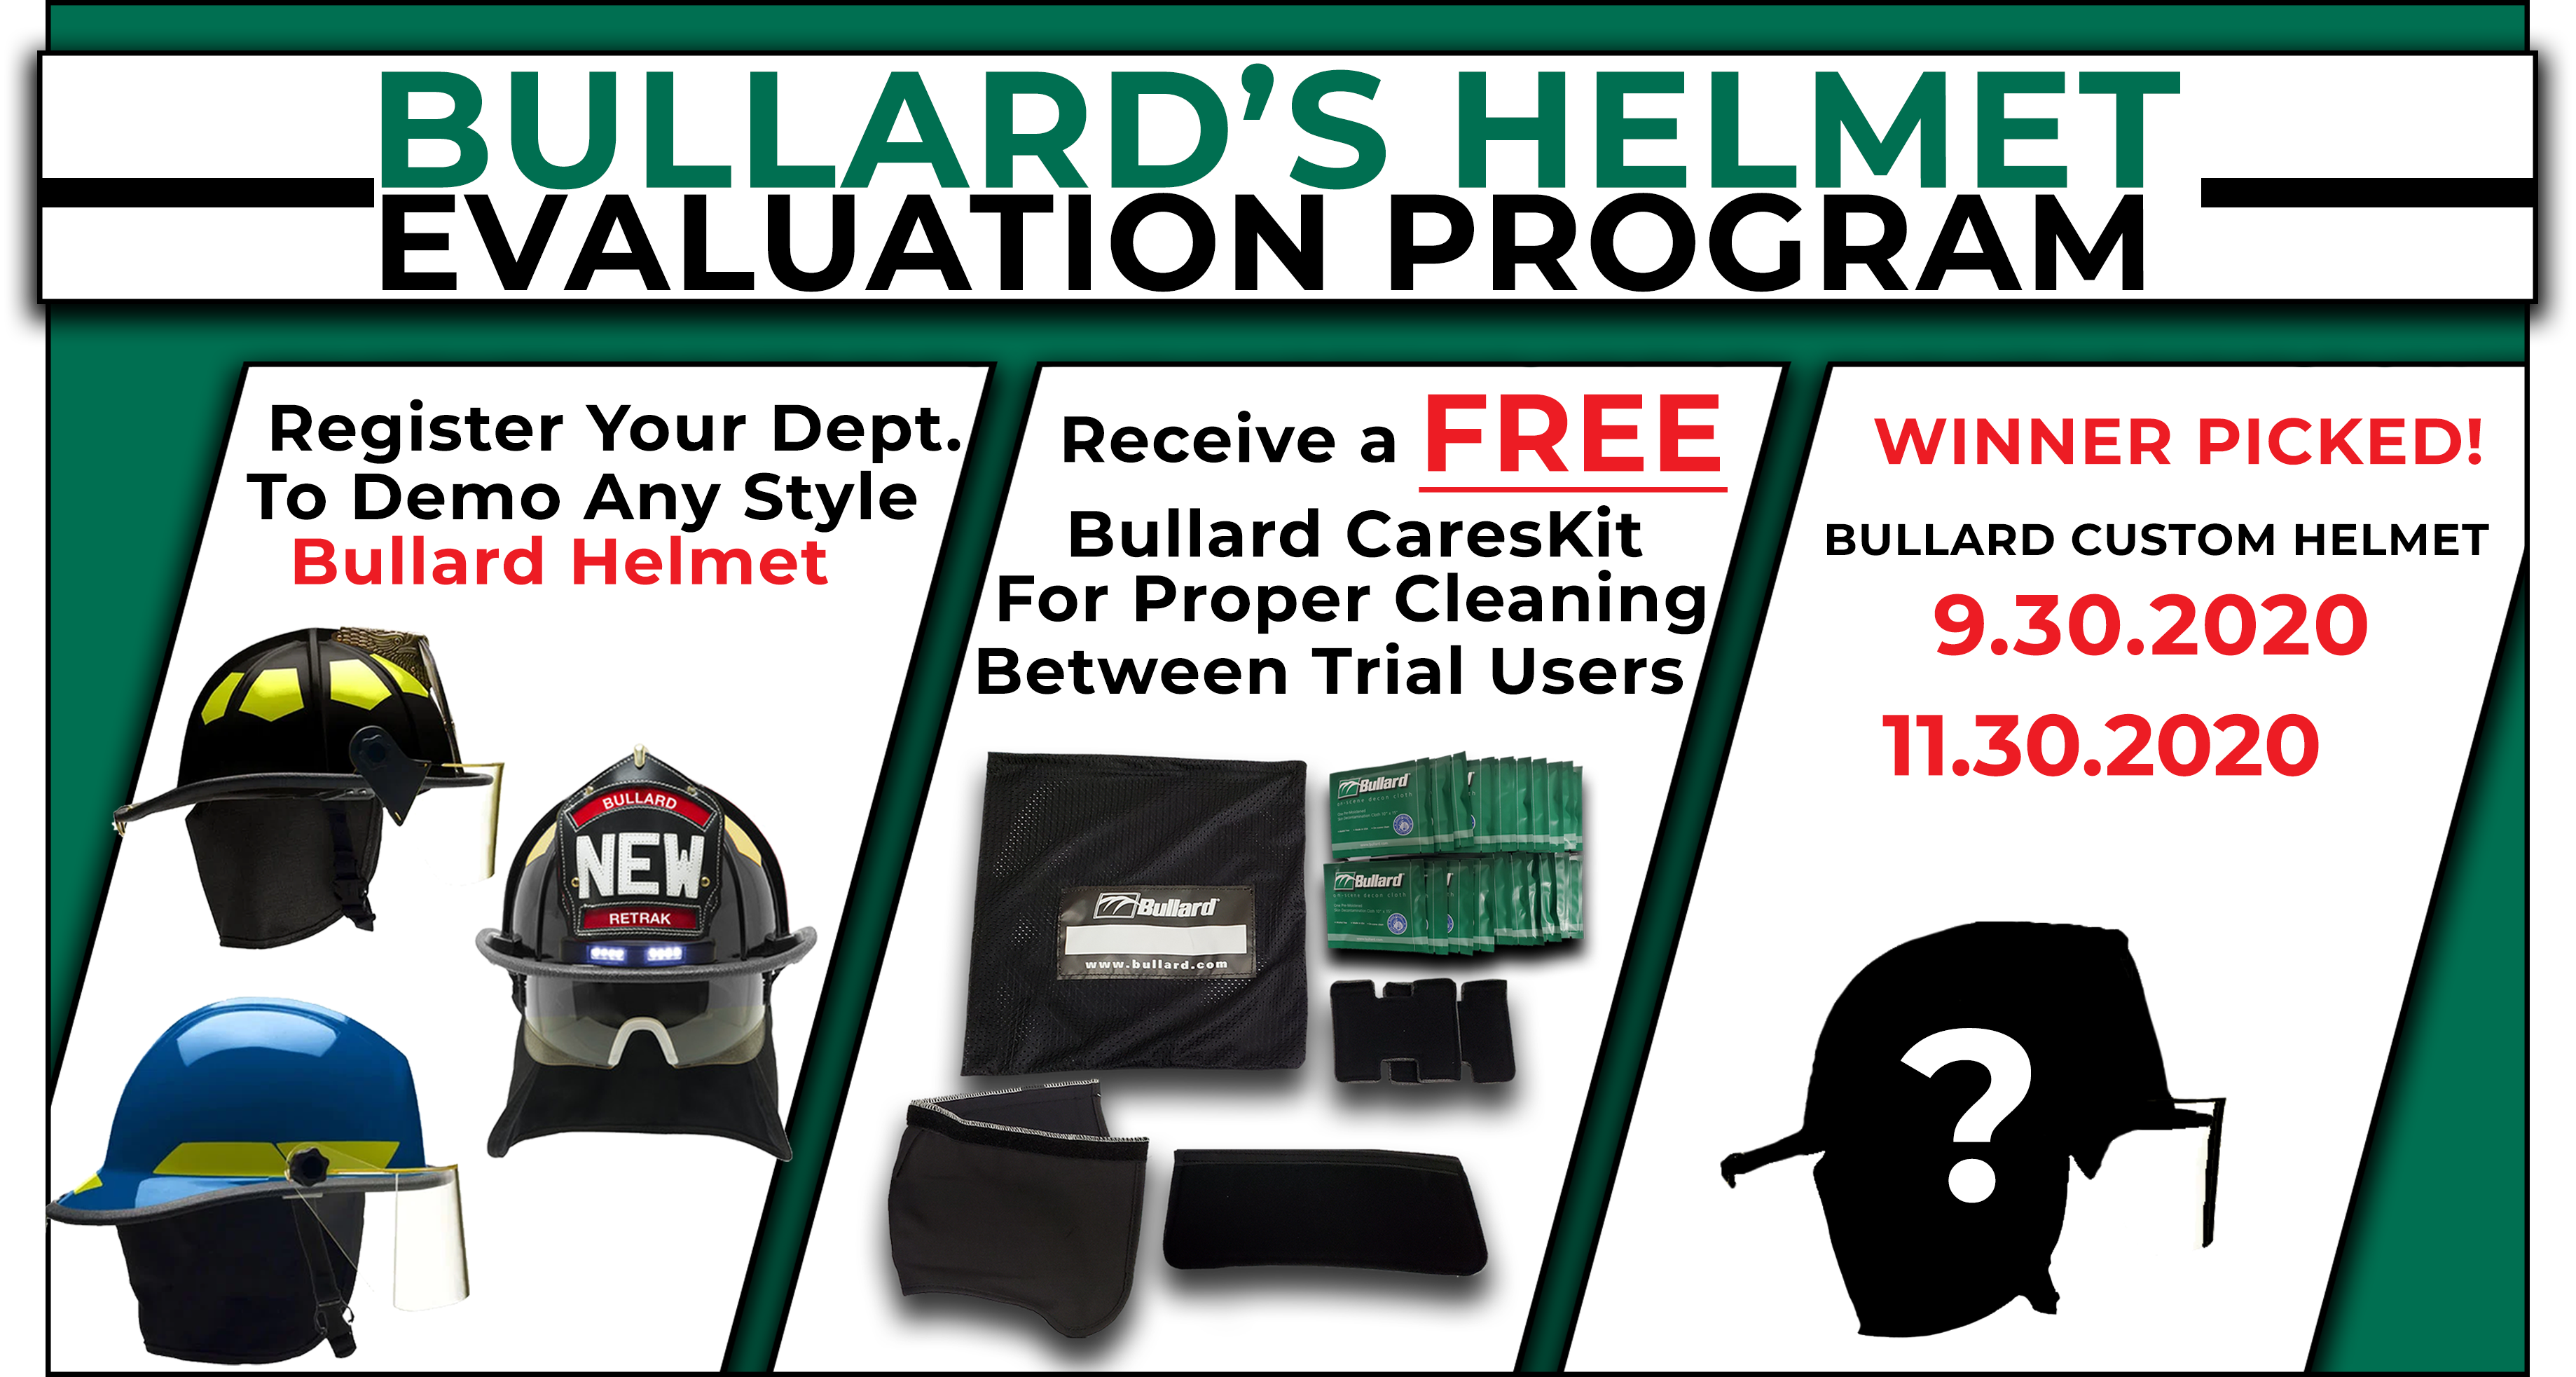 Bullard Helmet Evaluation Program